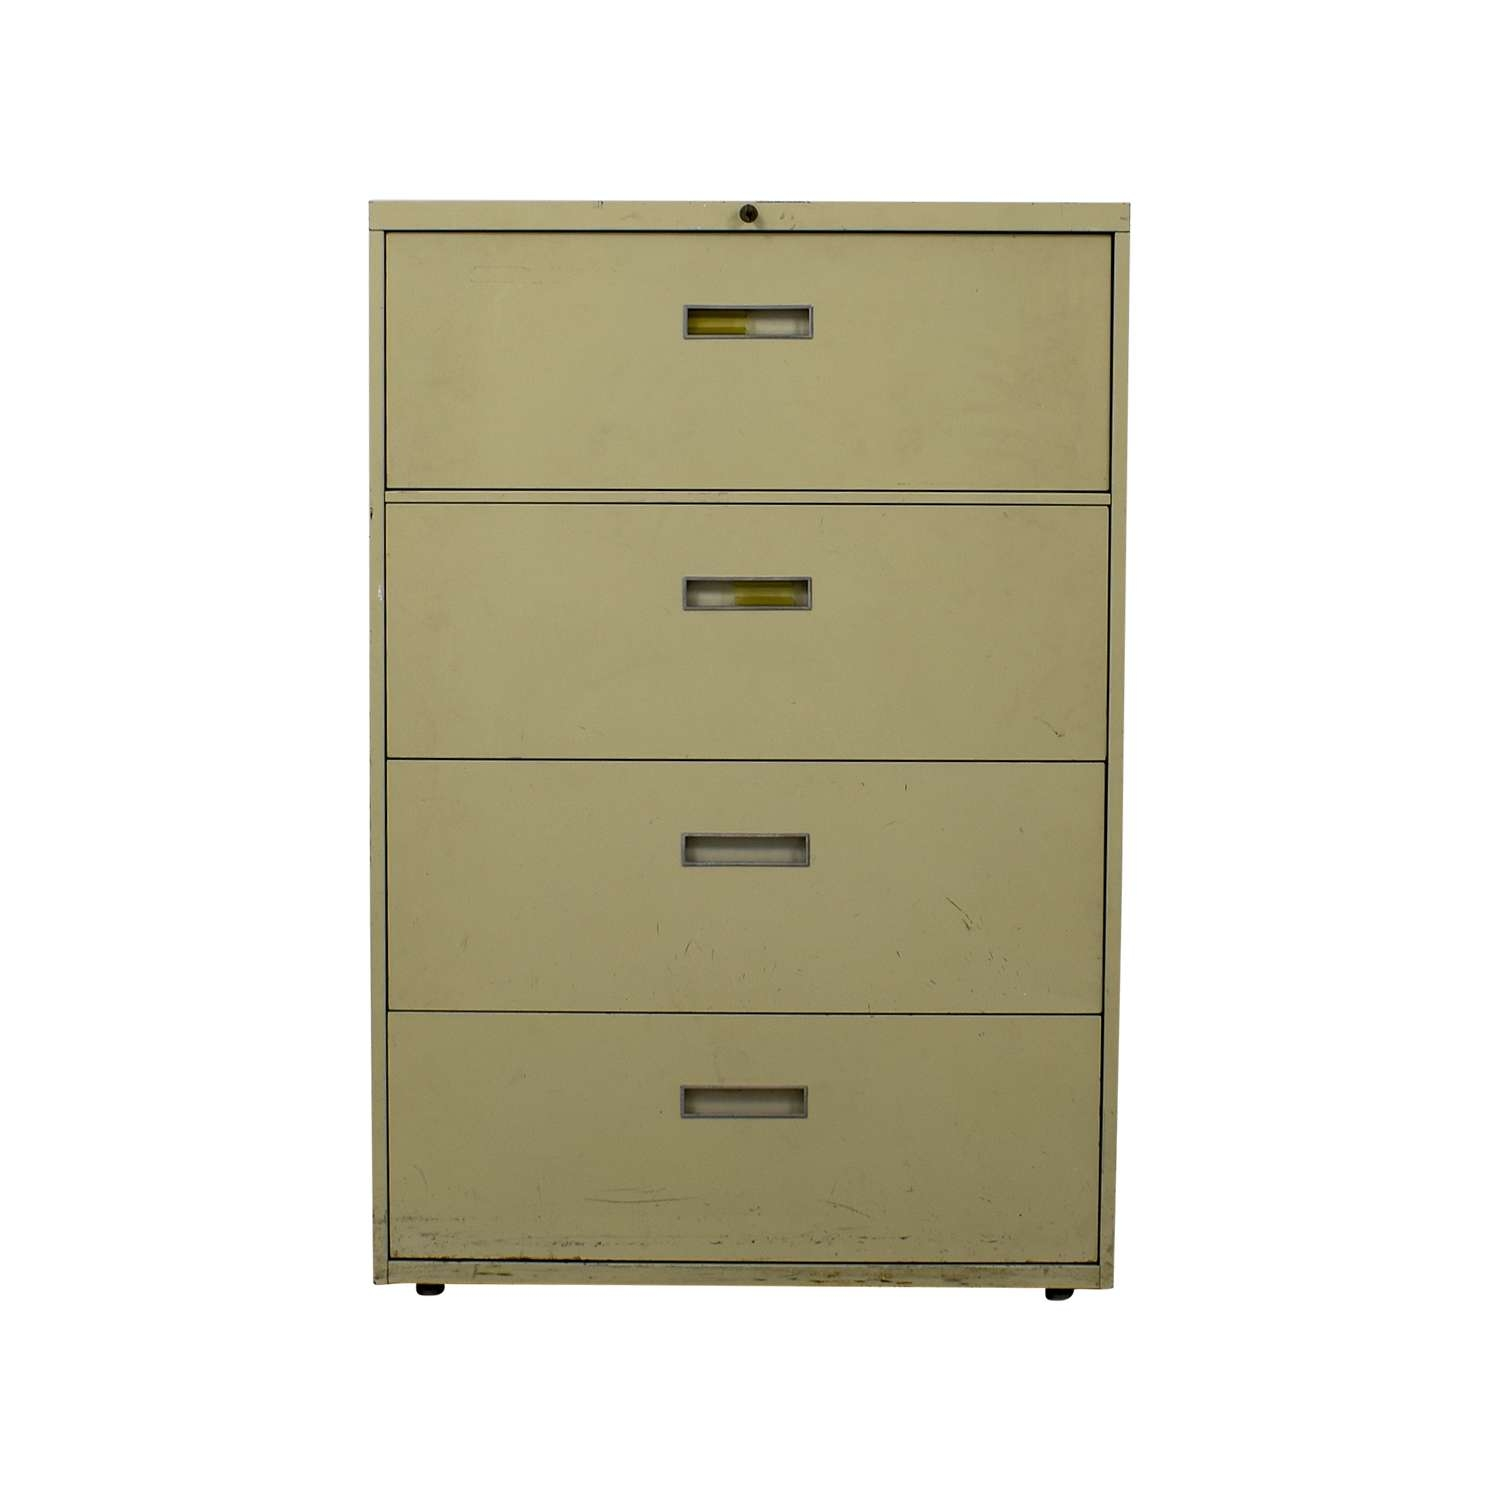 85% Off – Four Drawer Tan Lateral File Cabinet / Storage Regarding Green Sideboards (Gallery 5 of 20)